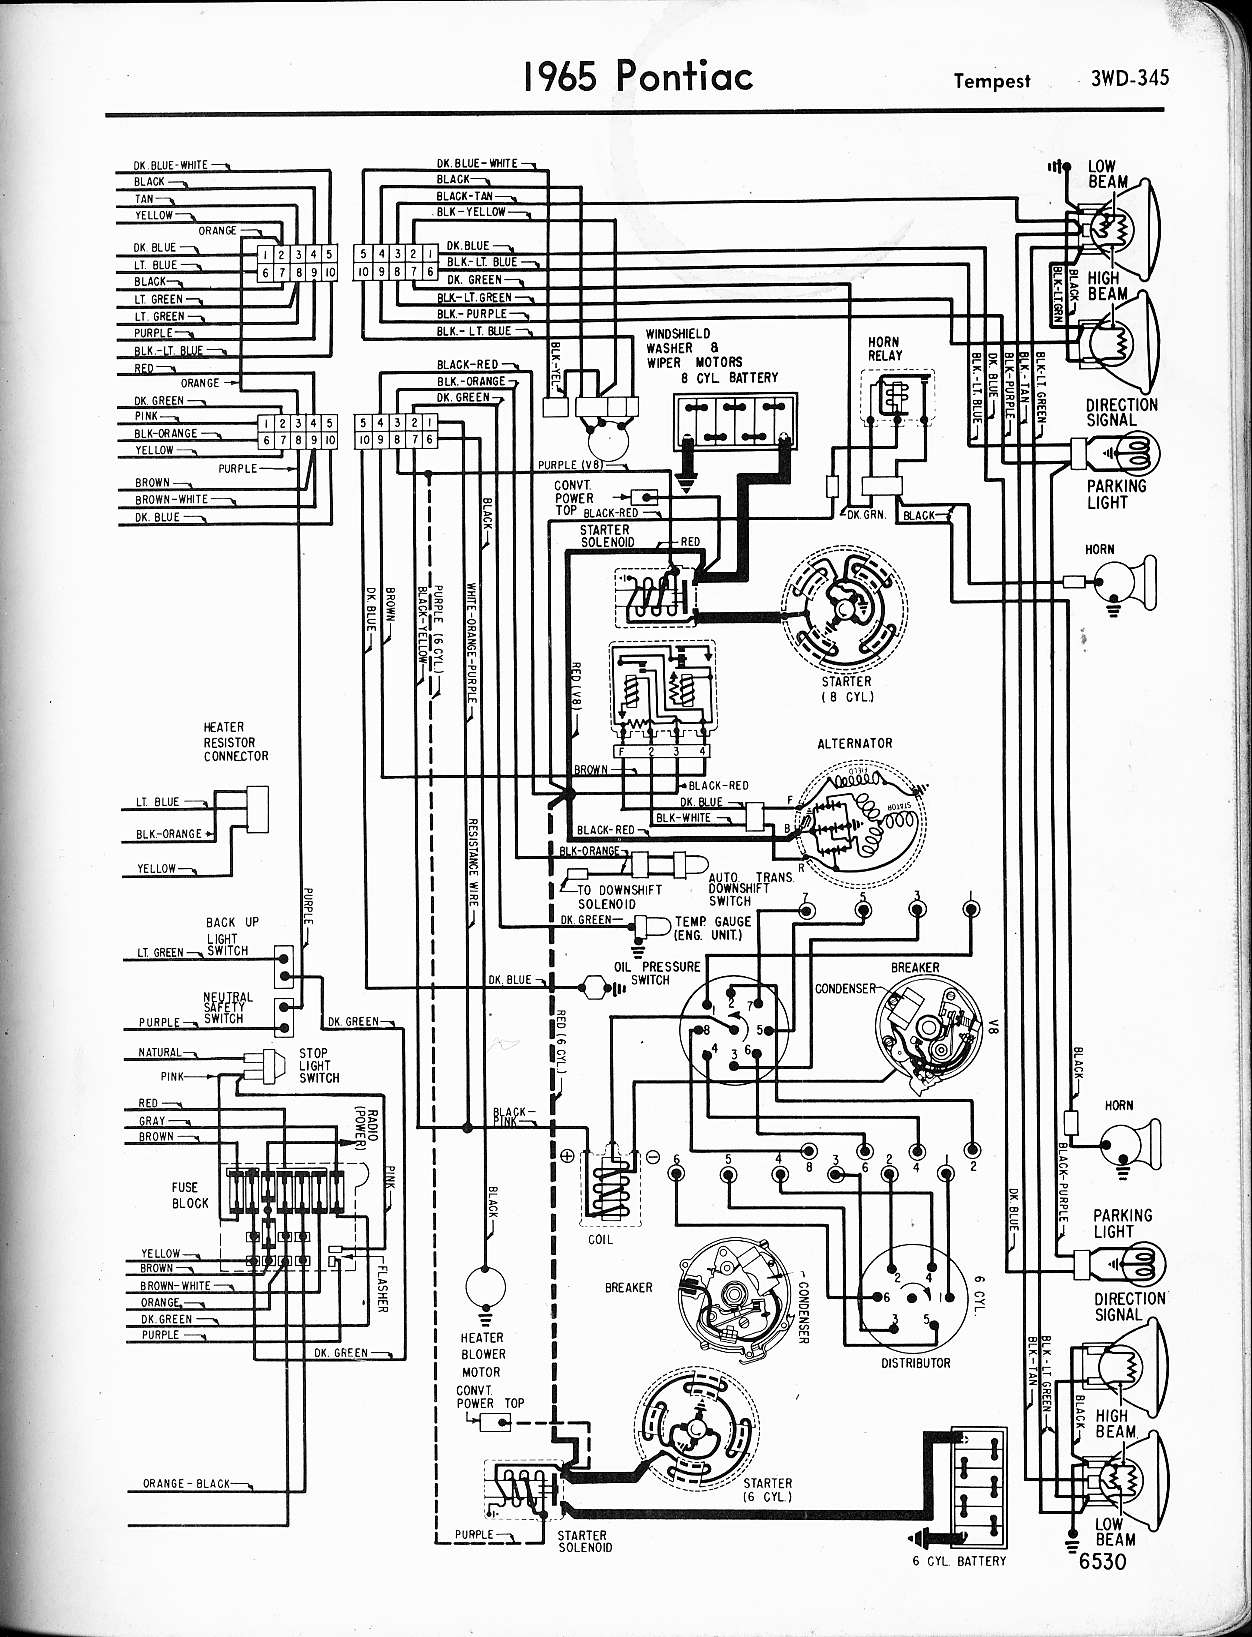 Wiring Diagram 1968 Gto Automotive Chevrolet Camaro Wallace Racing Diagrams Rh Wallaceracing Com 1967 Pontiac